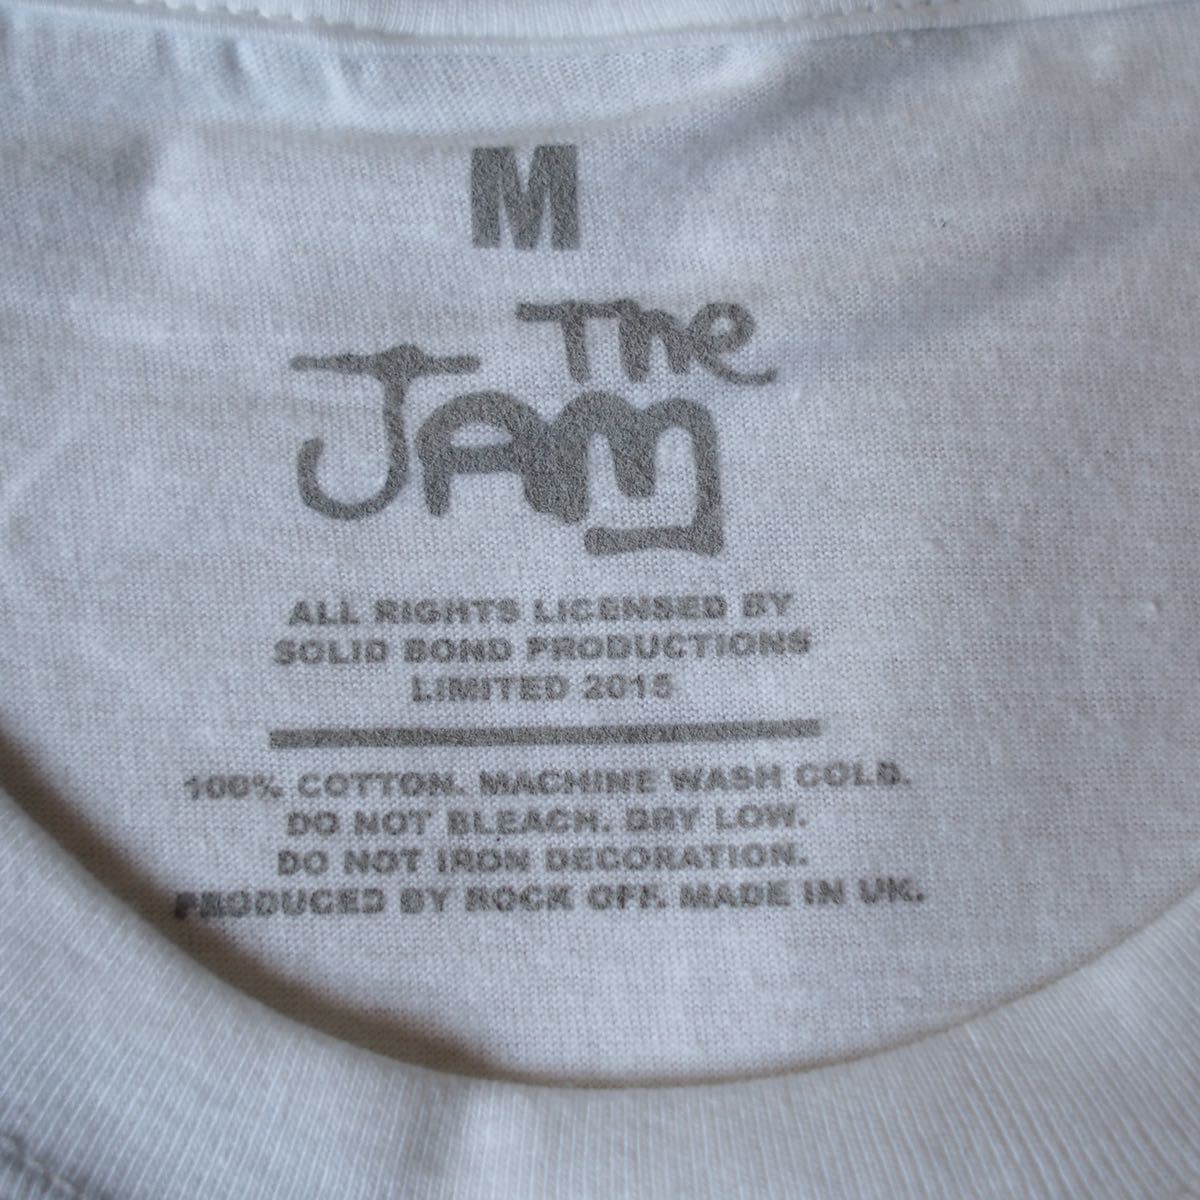 Official[The Jam]M ジャム Tシャツ バンド Nirvana Blur Sonic Youth oasis joy division Stone Roses The Cure Kinks Beatles clash_画像4